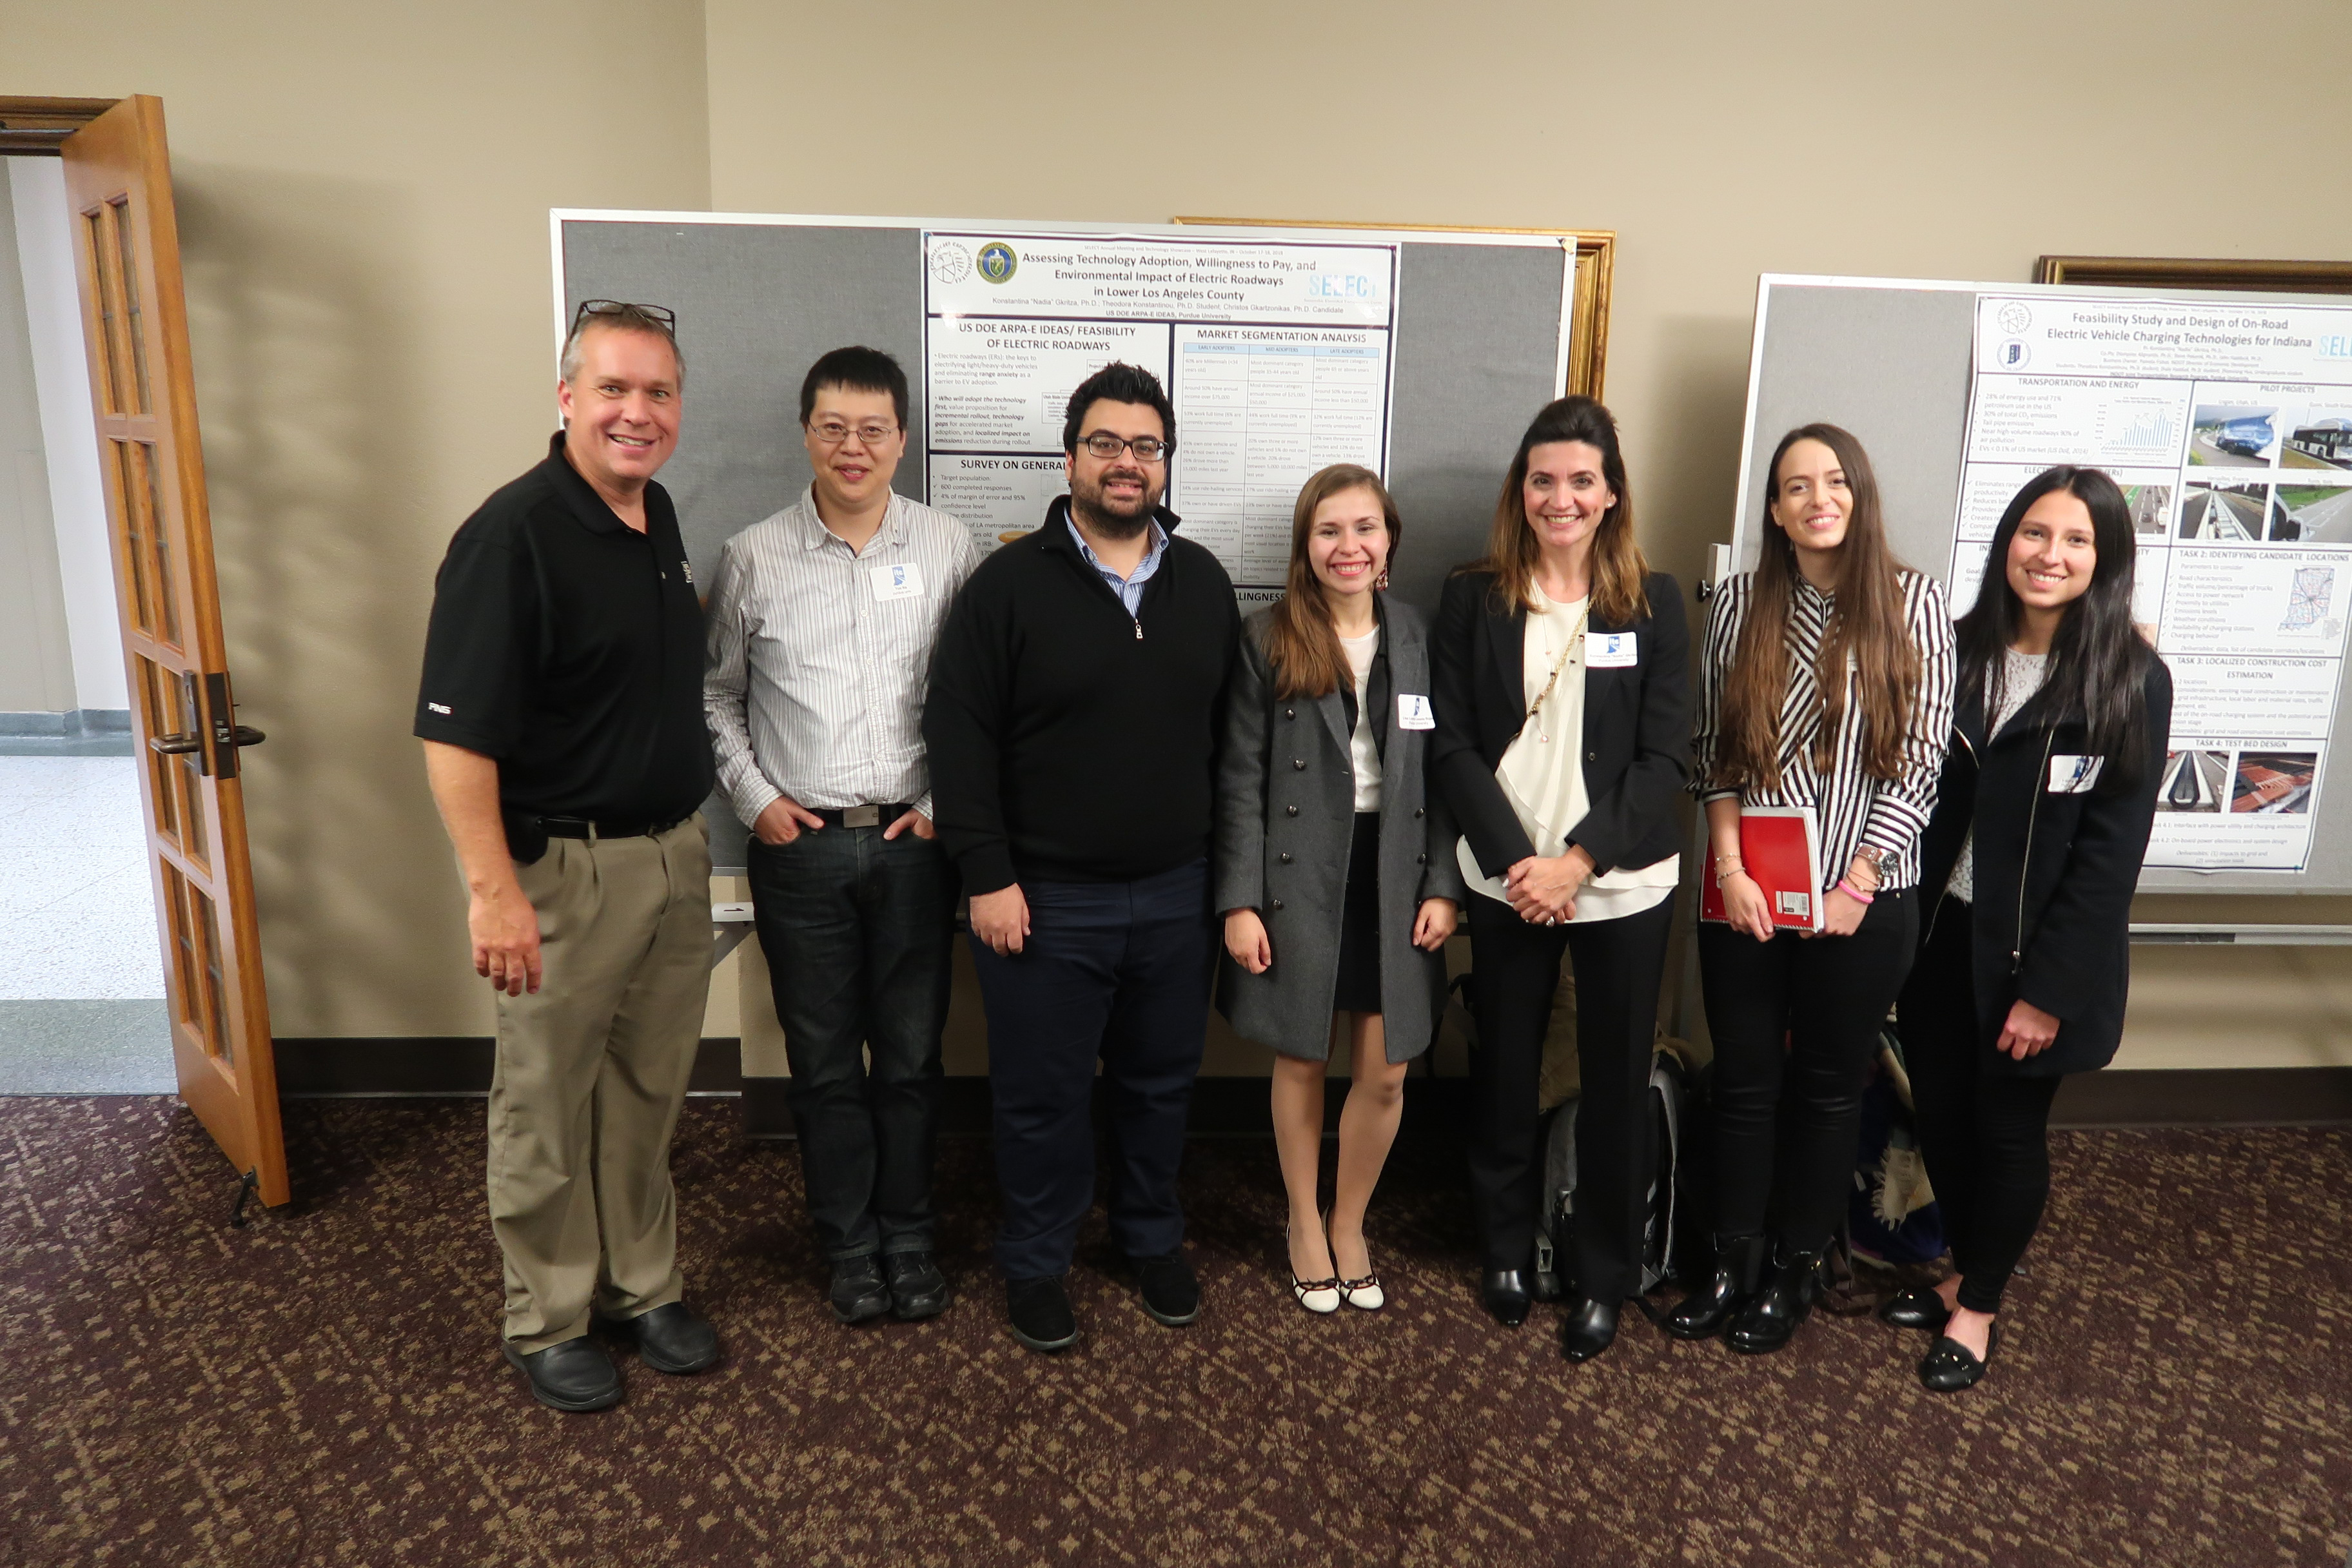 STSRG at the ITE Student dinner and poster session at Purdue